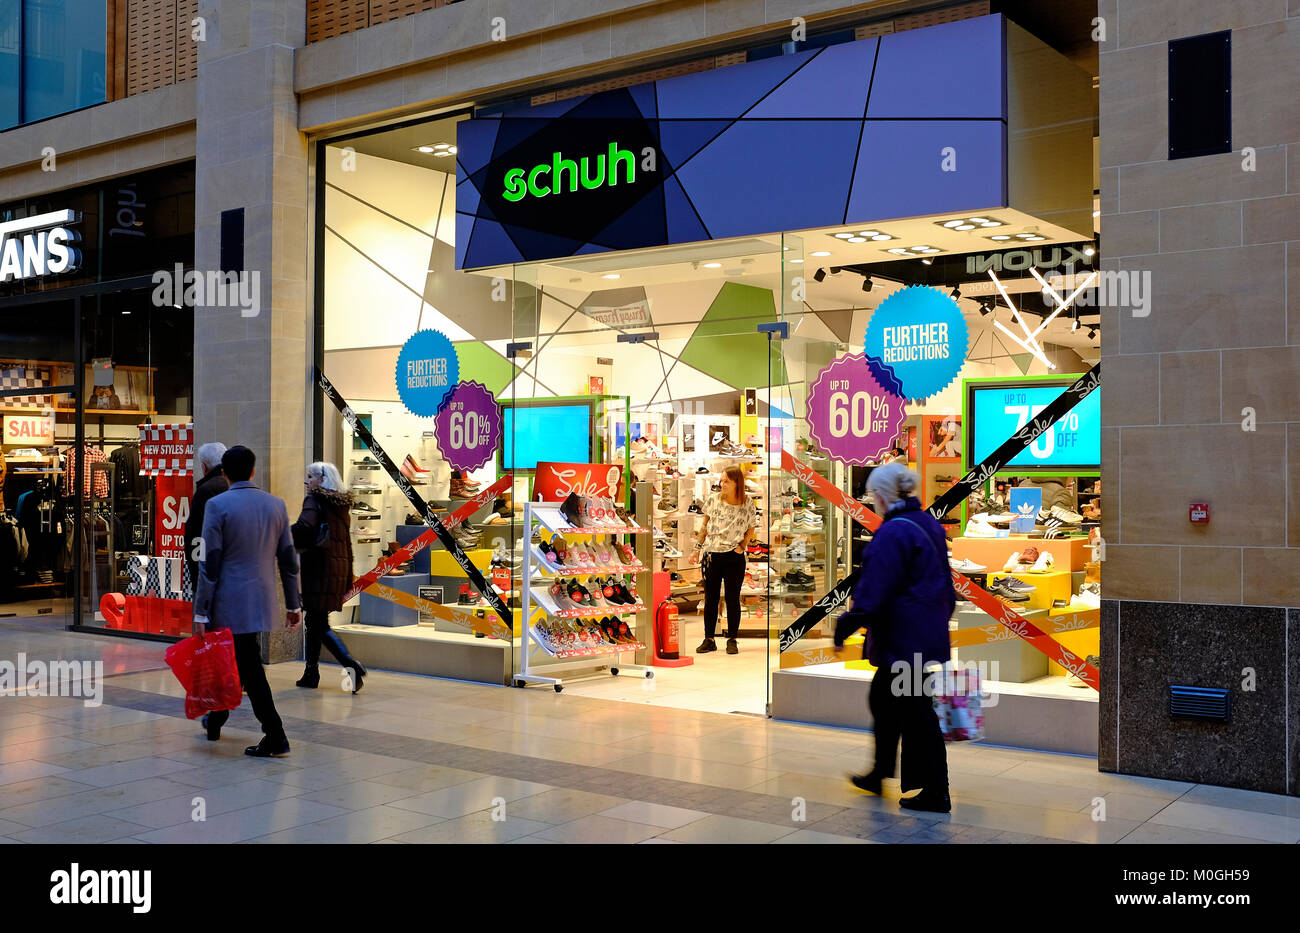 schuh footwear store, grand arcade, cambridge, england - Stock Image